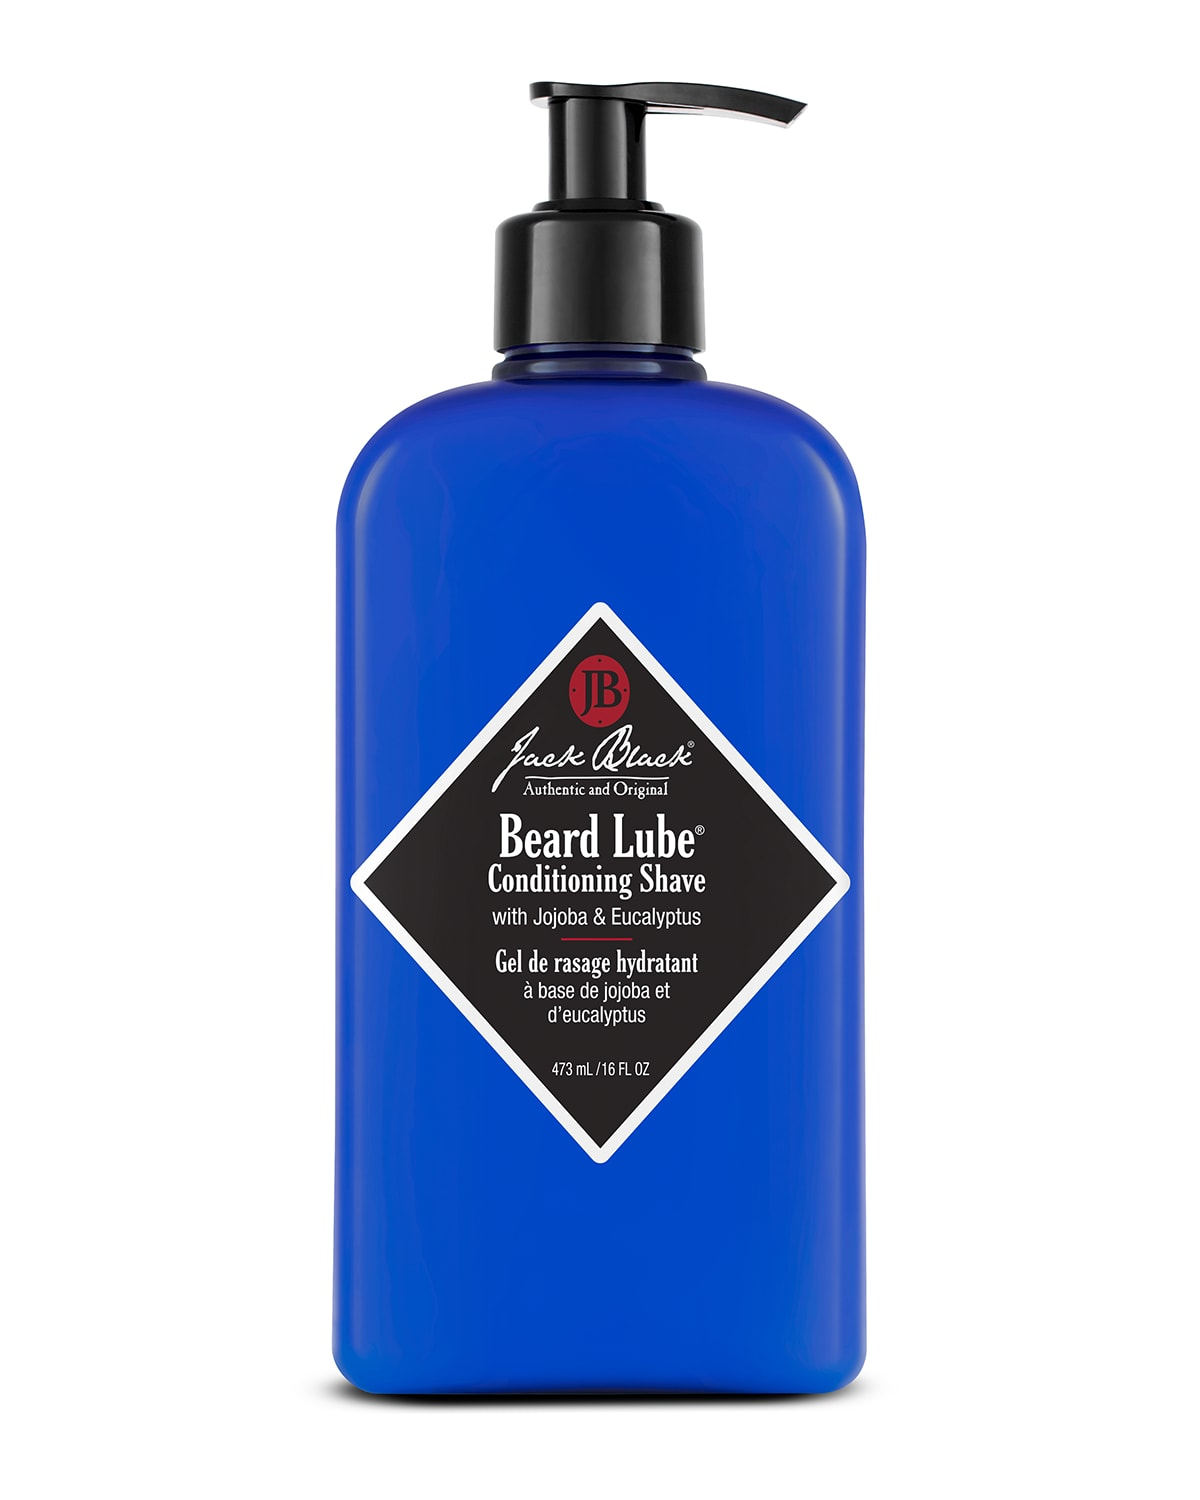 16 oz. Beard Lube Conditioning Shave Balm